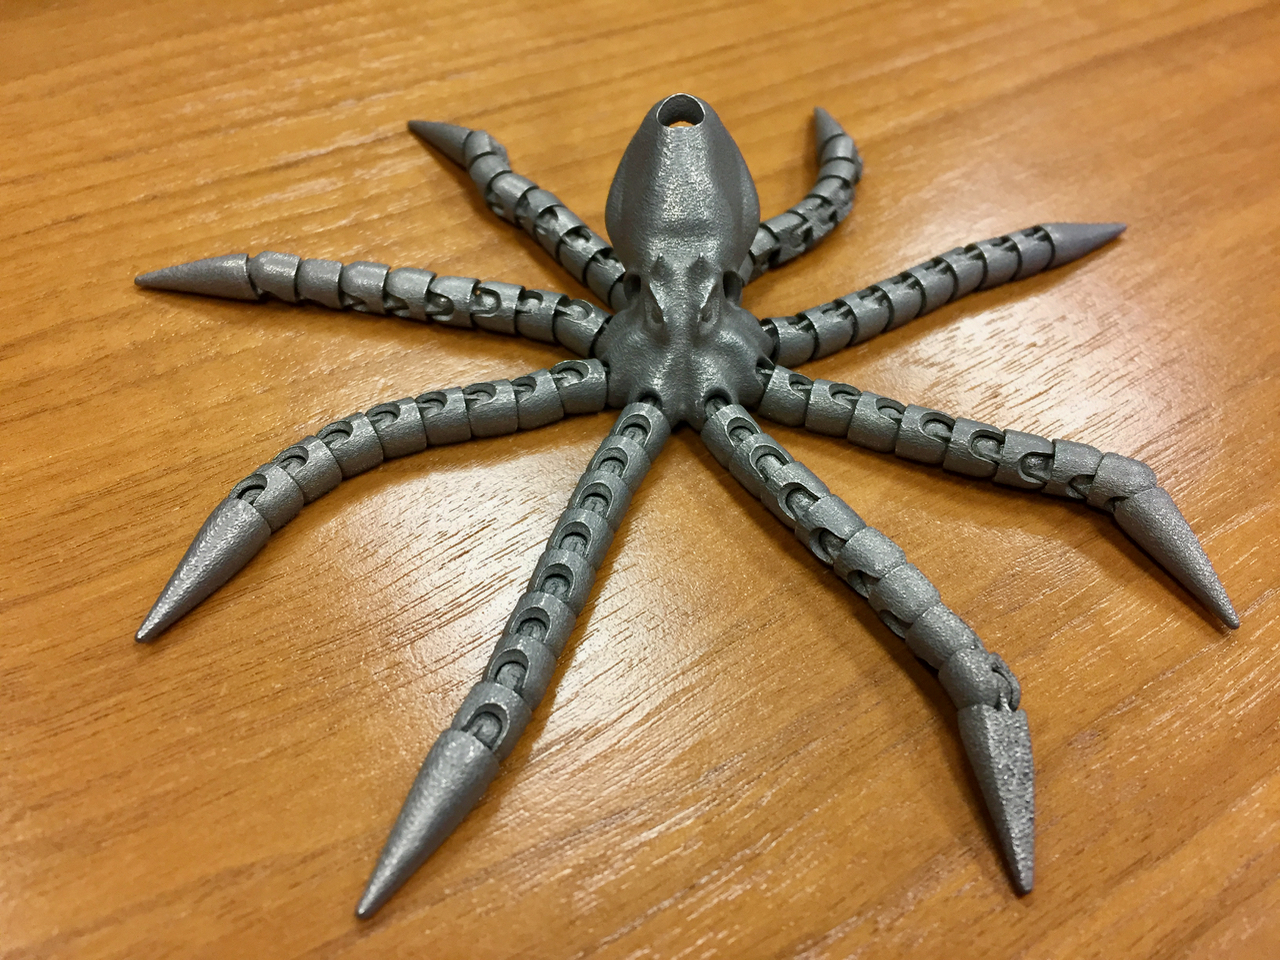 A metal 3D printed octopus made by Precision ADM